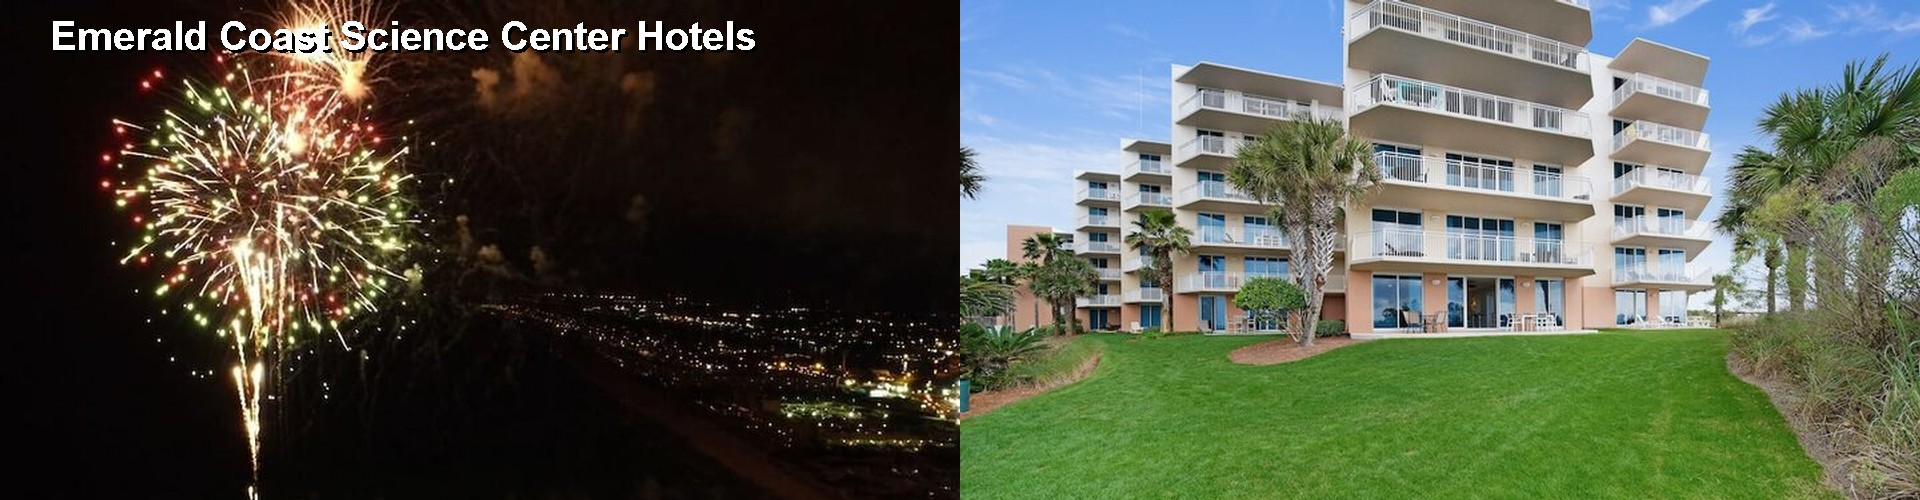 5 Best Hotels near Emerald Coast Science Center